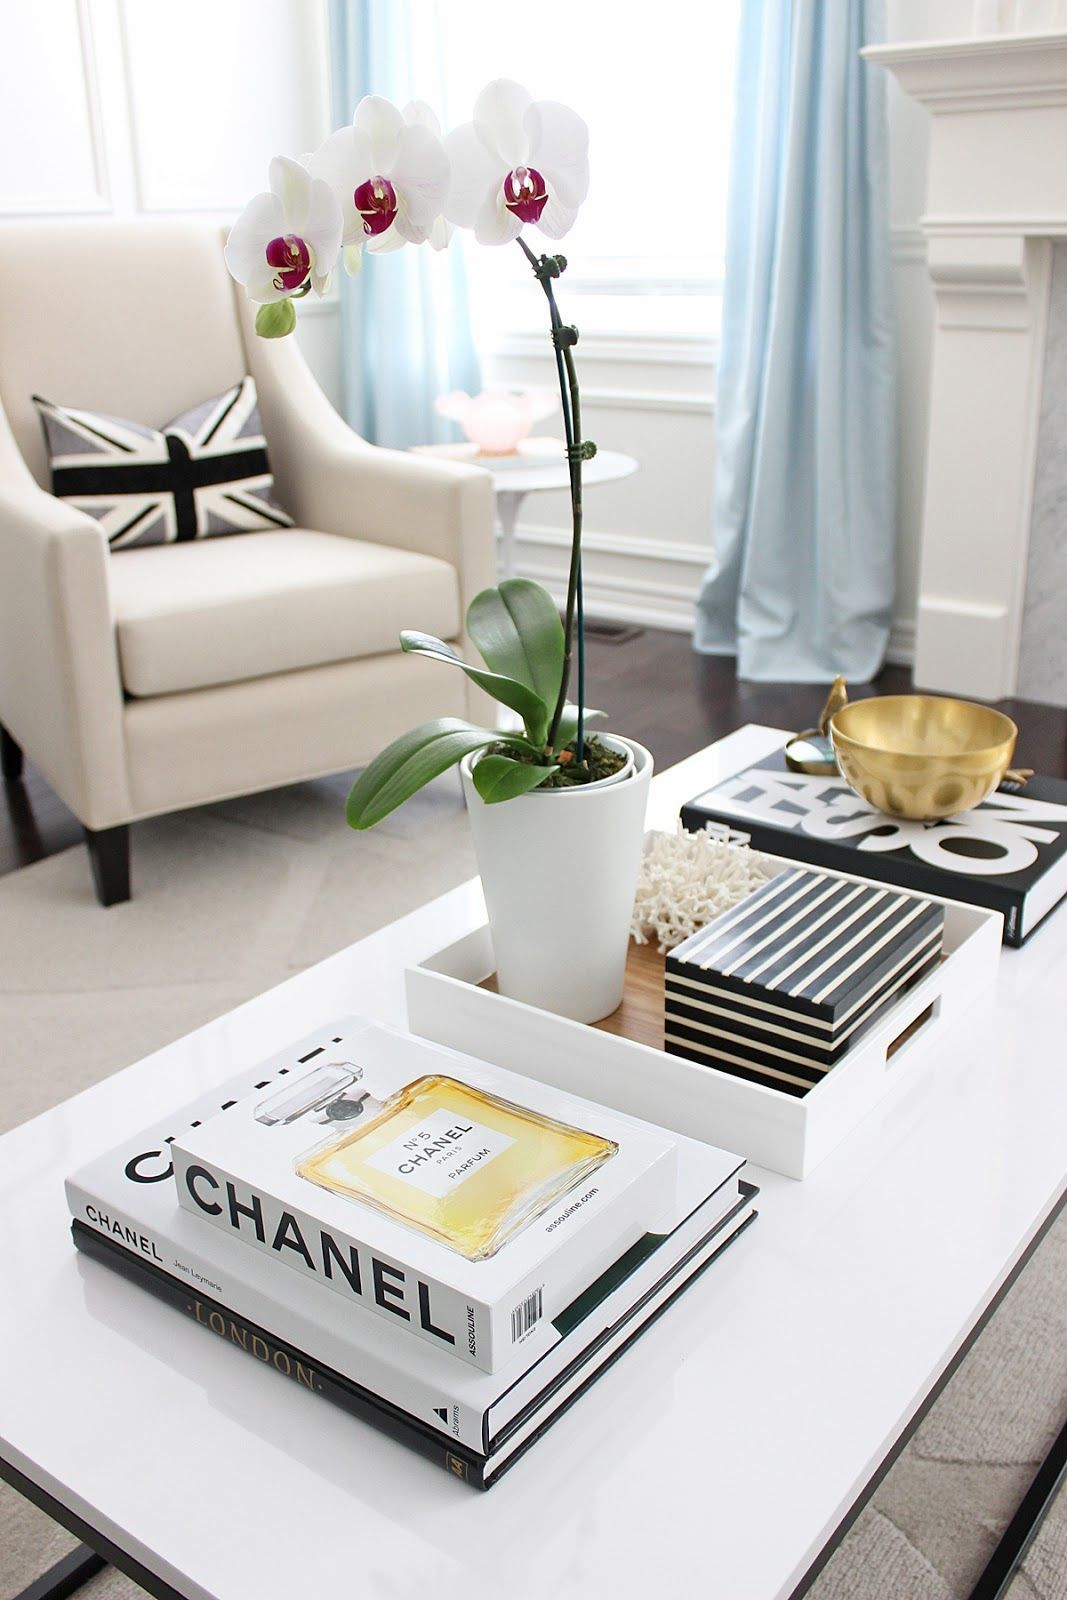 15 New York City Coffee Table Book Gallery In 2020 Coffee Table